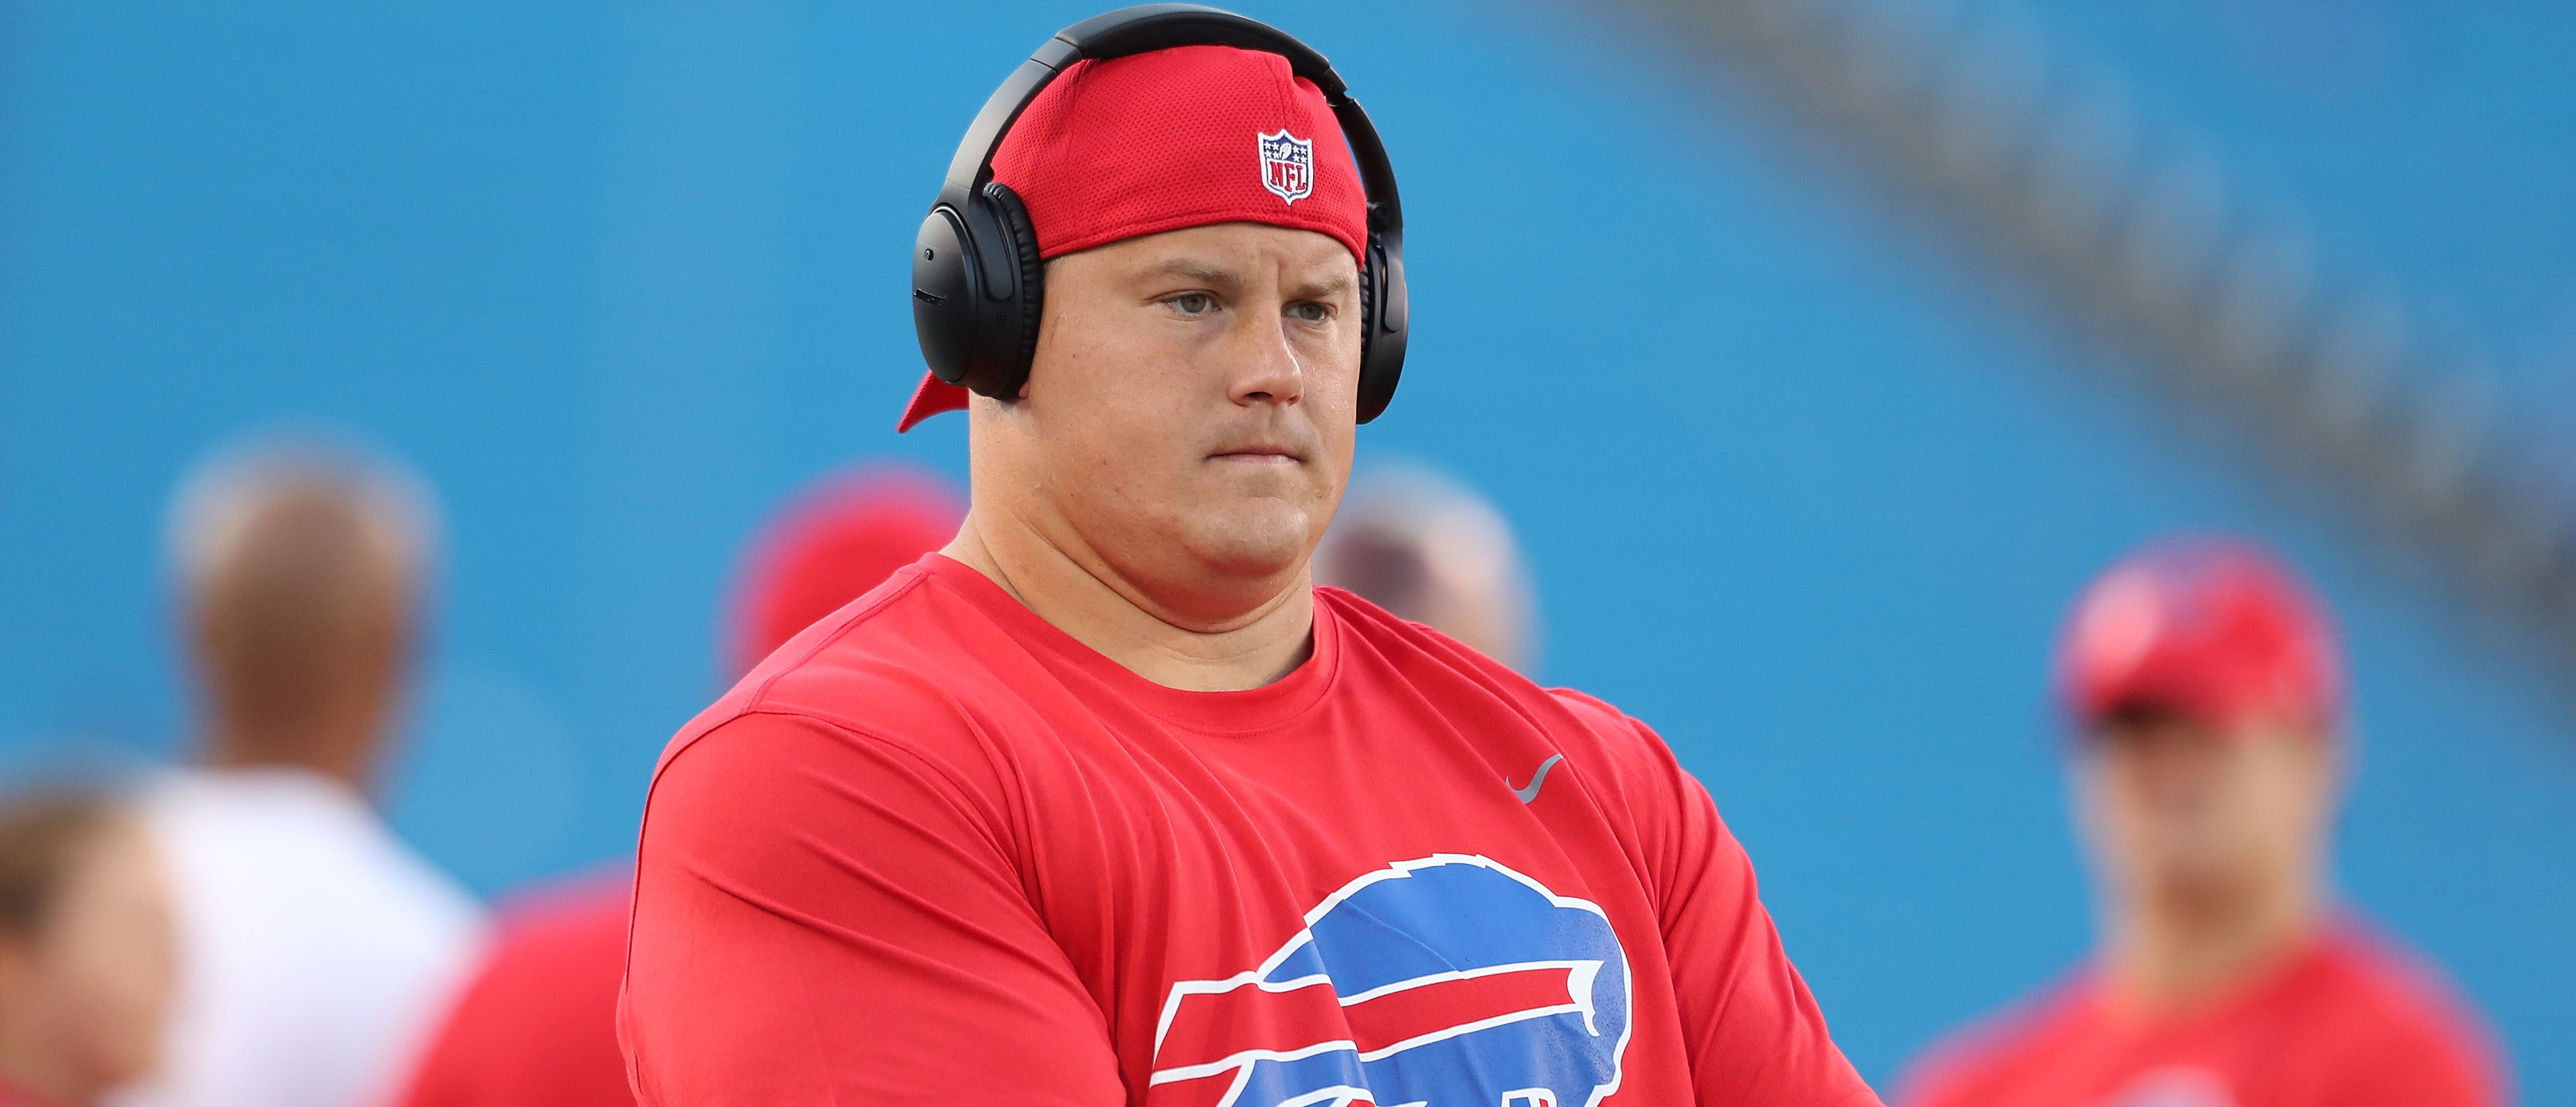 Richie Incognito Suspended For The First 2 Weeks Of The NFL Season